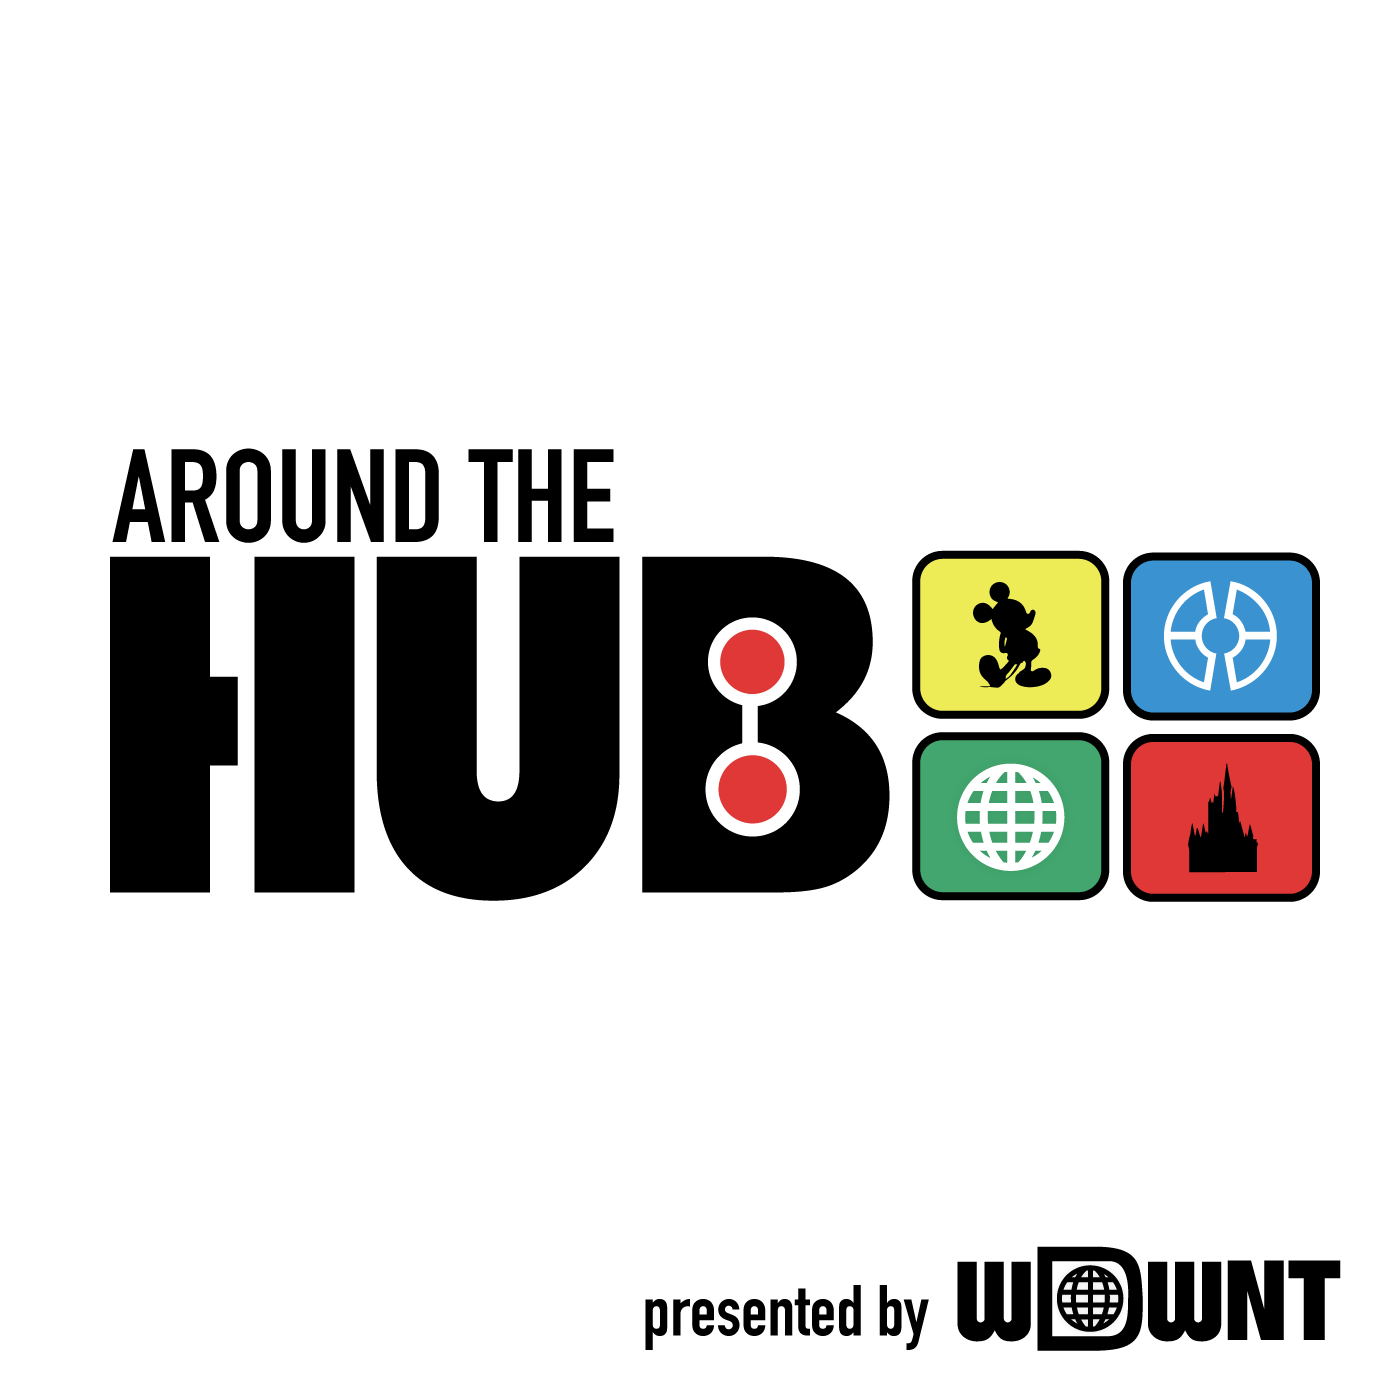 Around the Hub presented by WDWNT